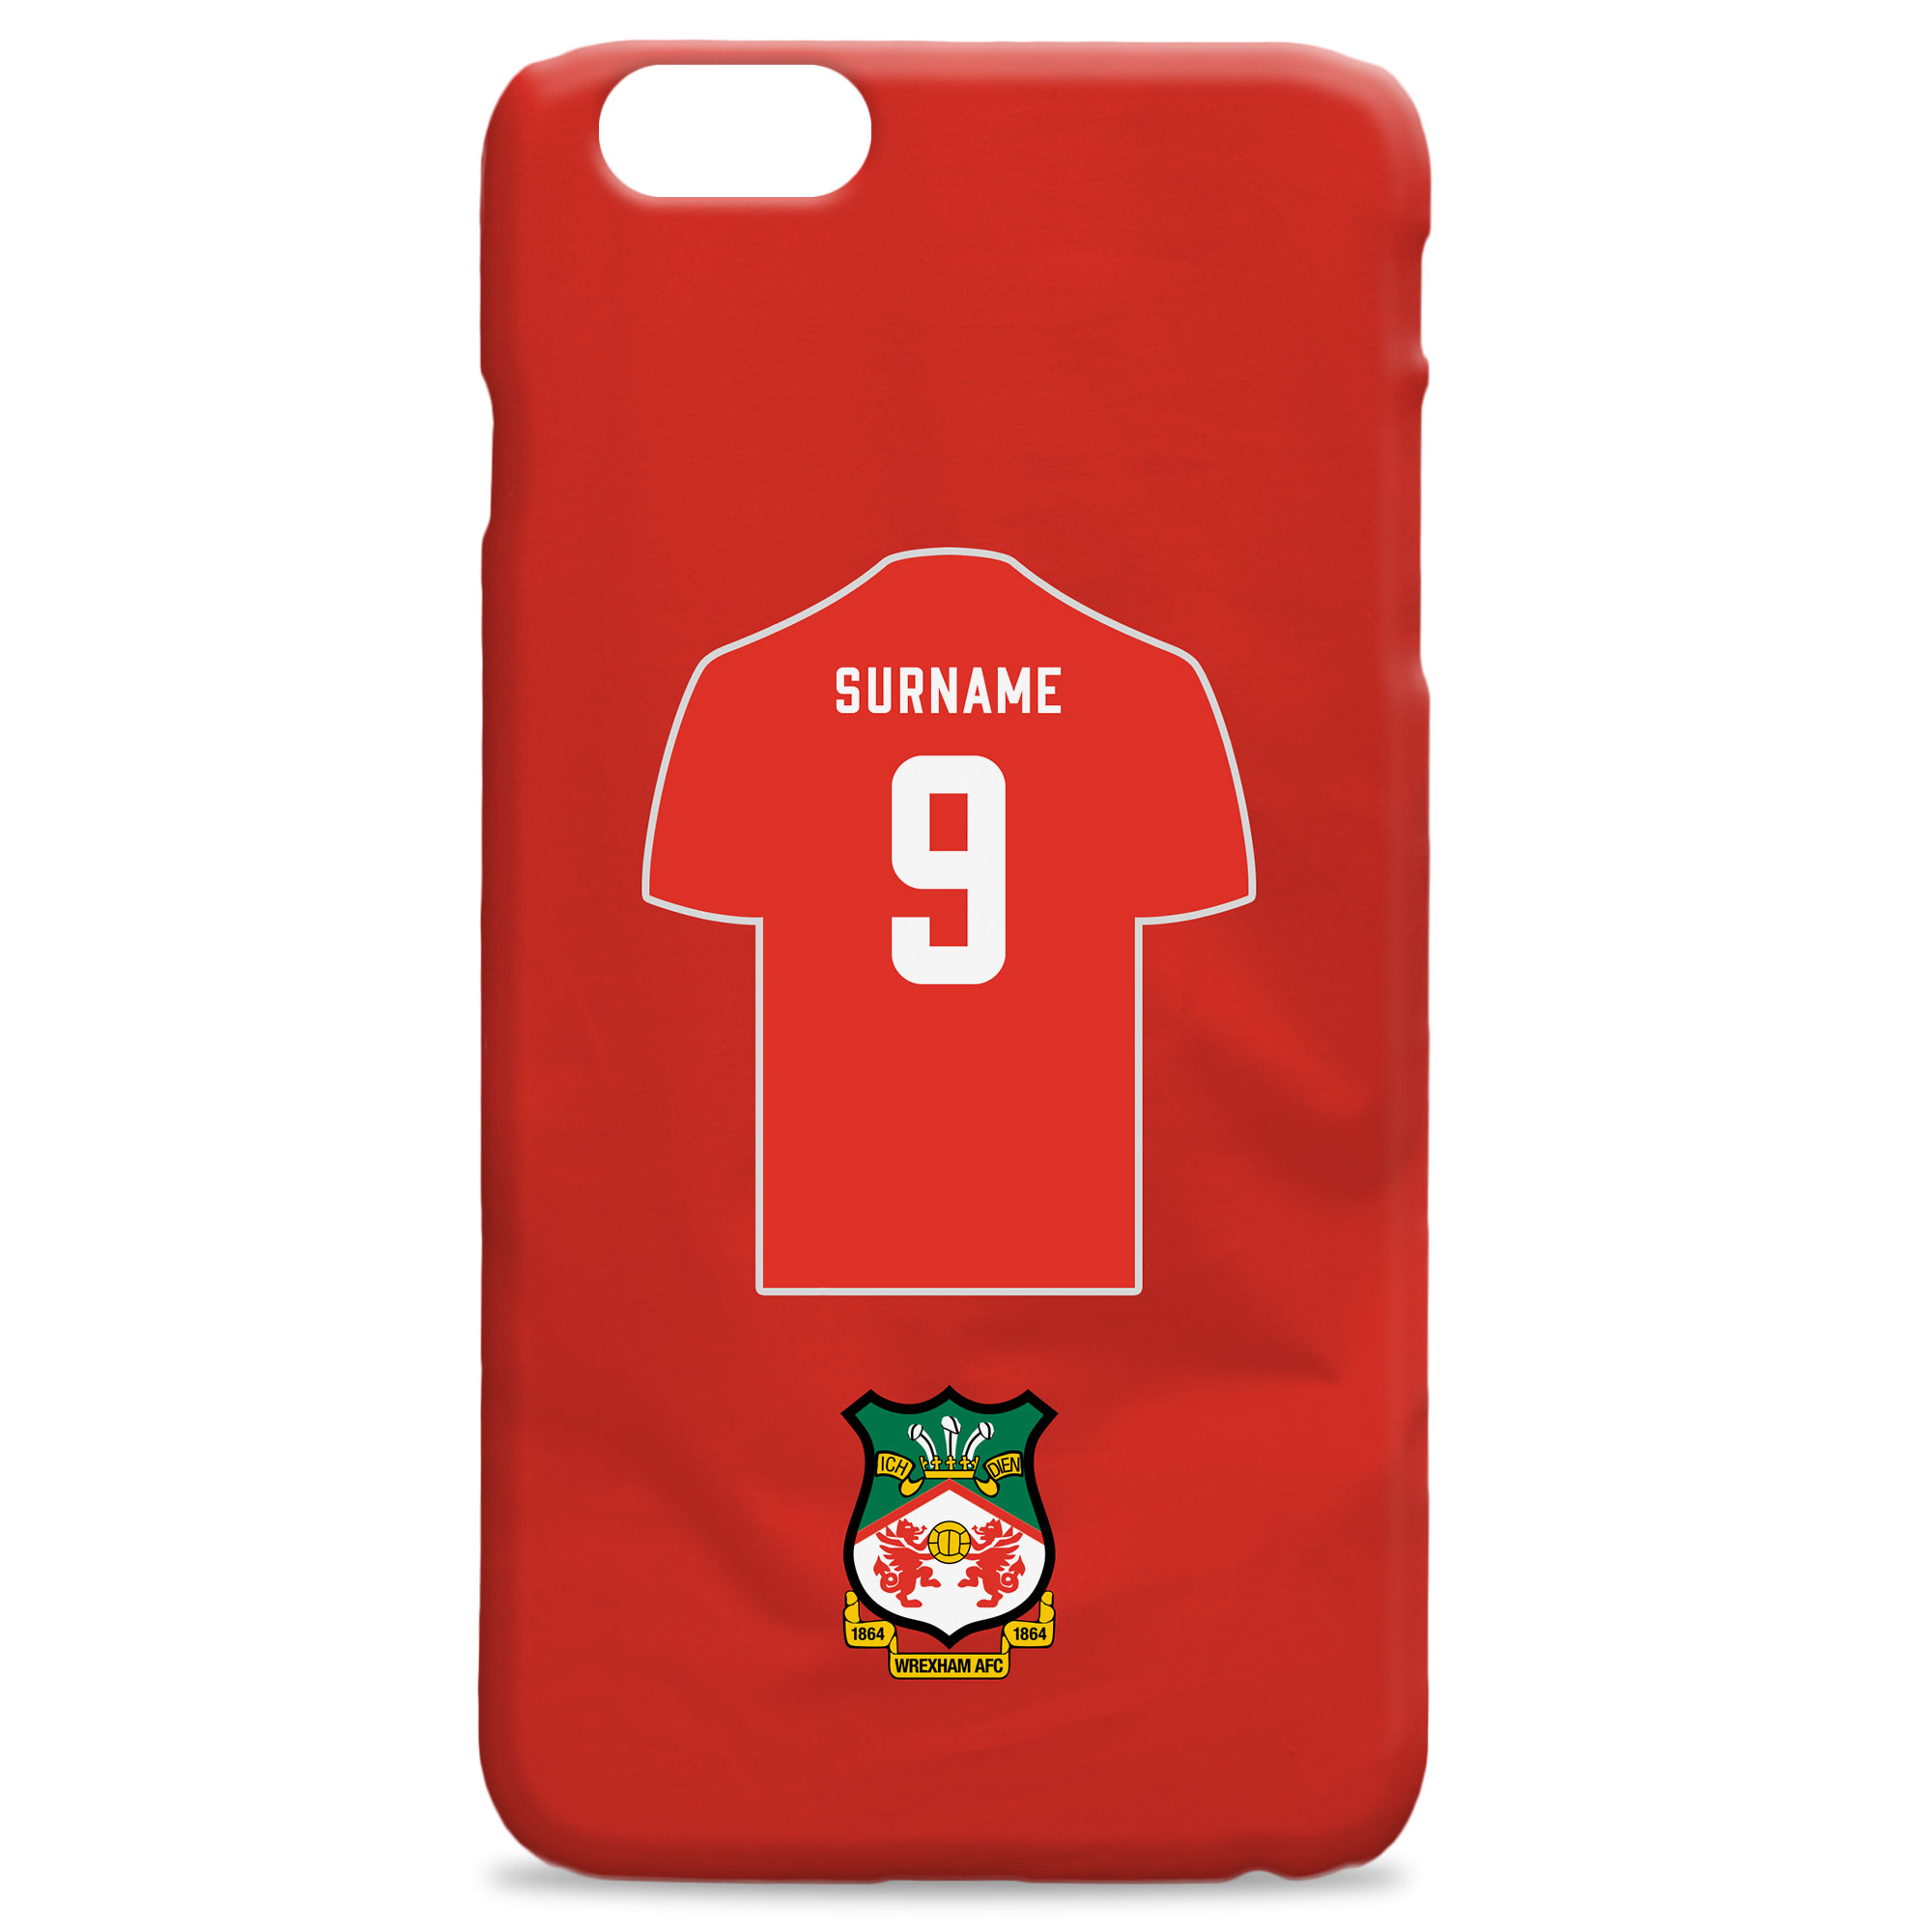 Wrexham AFC Shirt Hard Back Phone Case